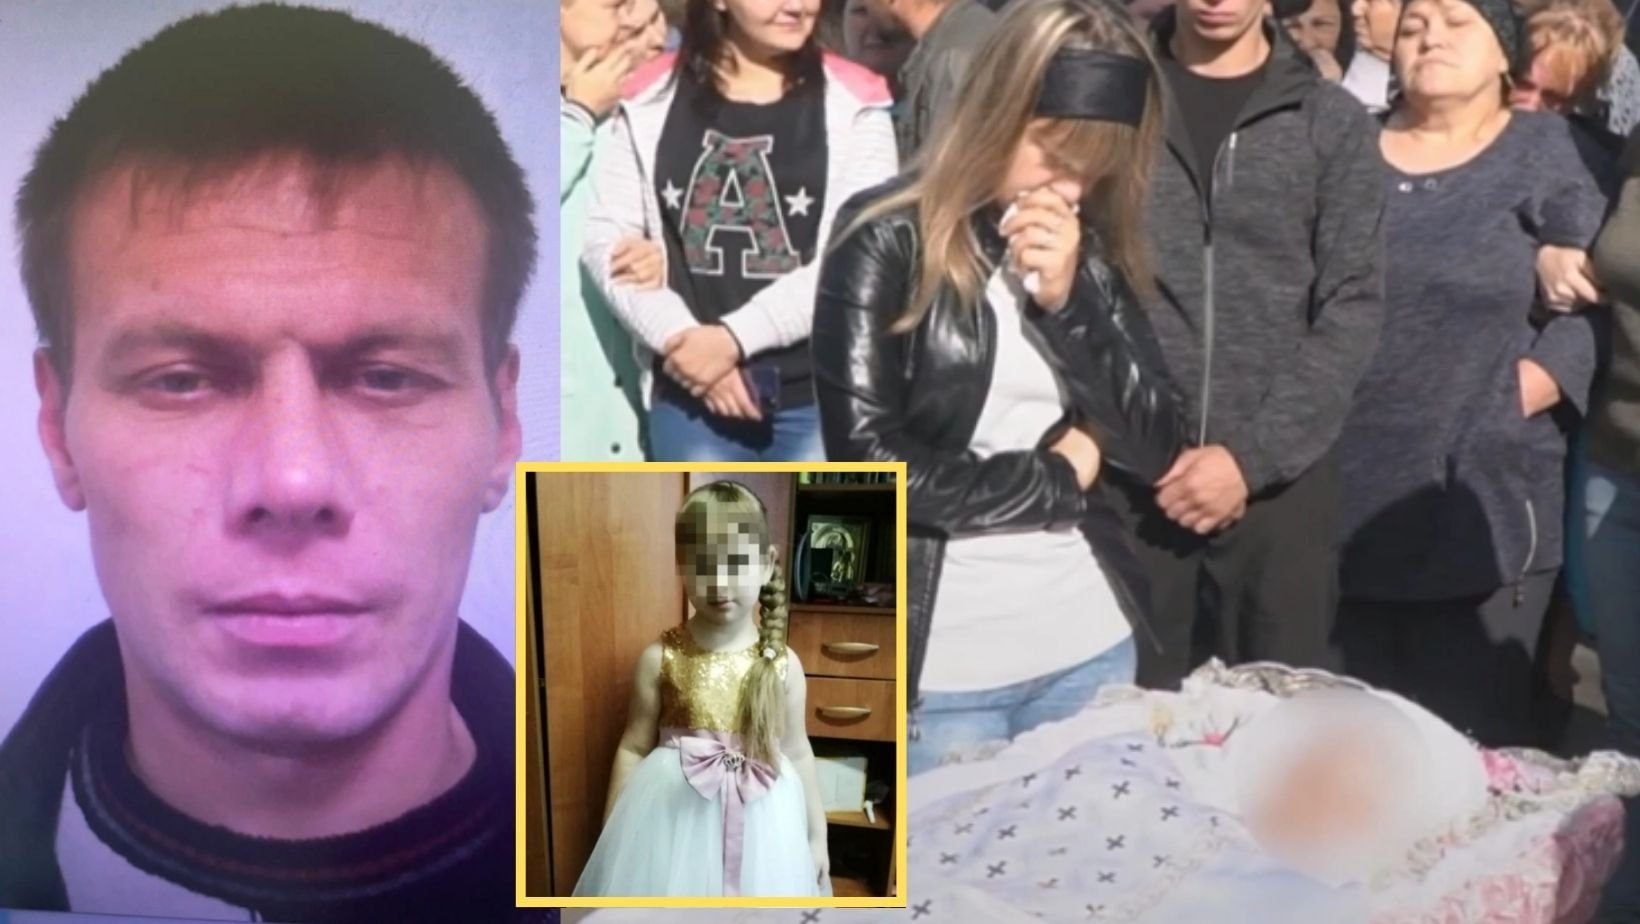 1 74.jpg?resize=412,232 - Man R*ped & Killed His Ex-GF's 9-Y.O Daughter As A Revenge For Breaking Up With Him